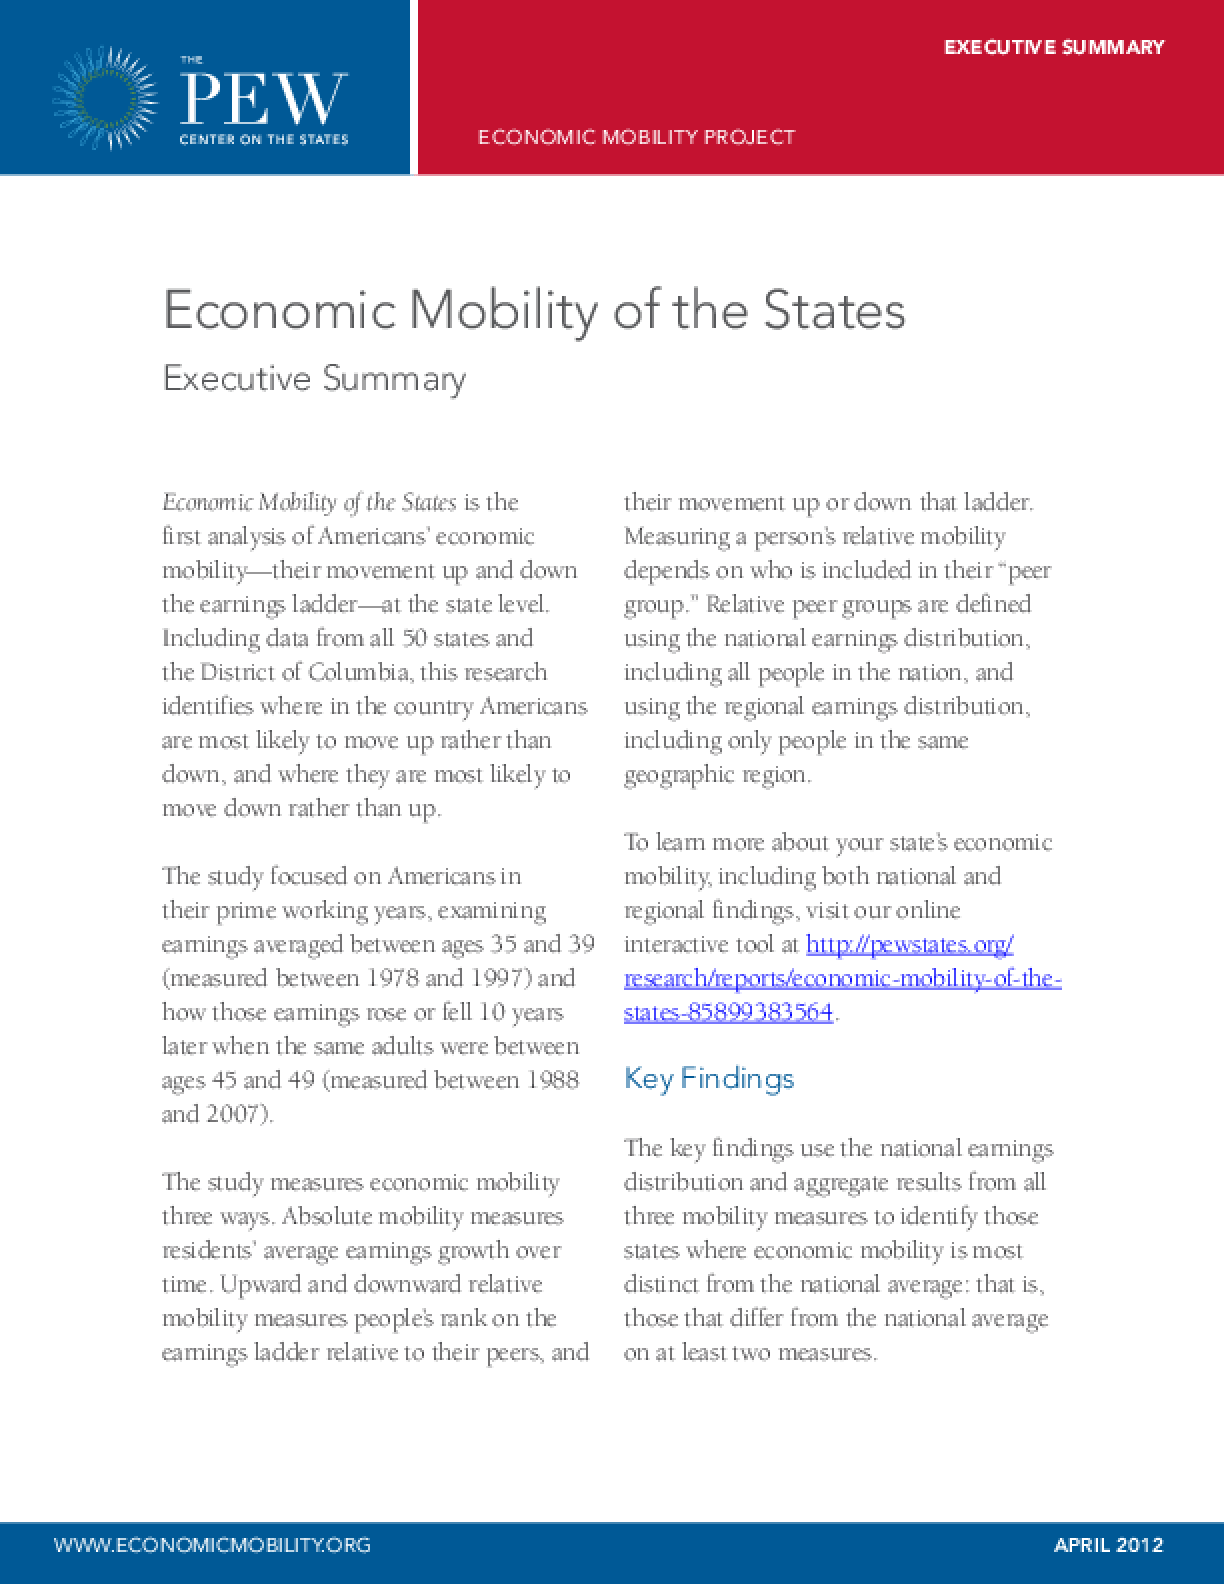 Economic Mobility of the States: Executive Summary